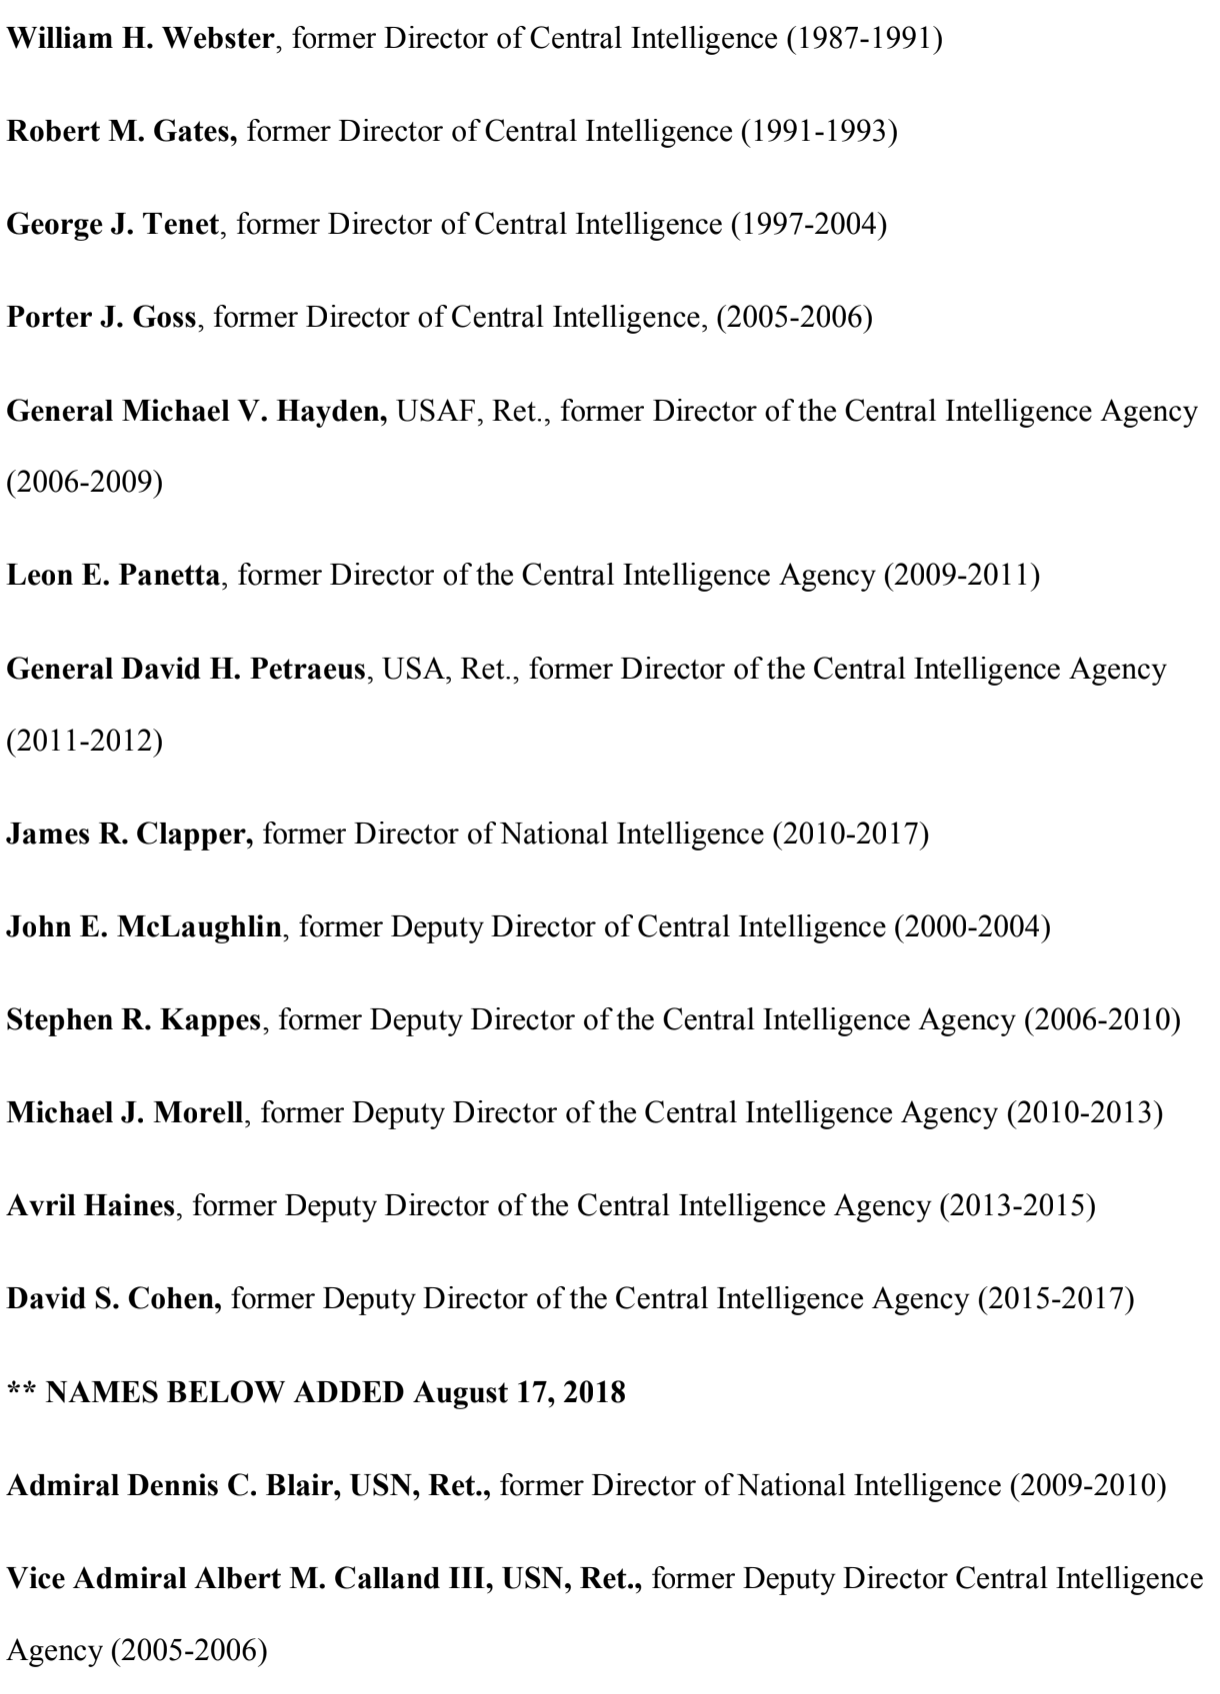 Over 70 former intelligence officers denounce Trump's threat to